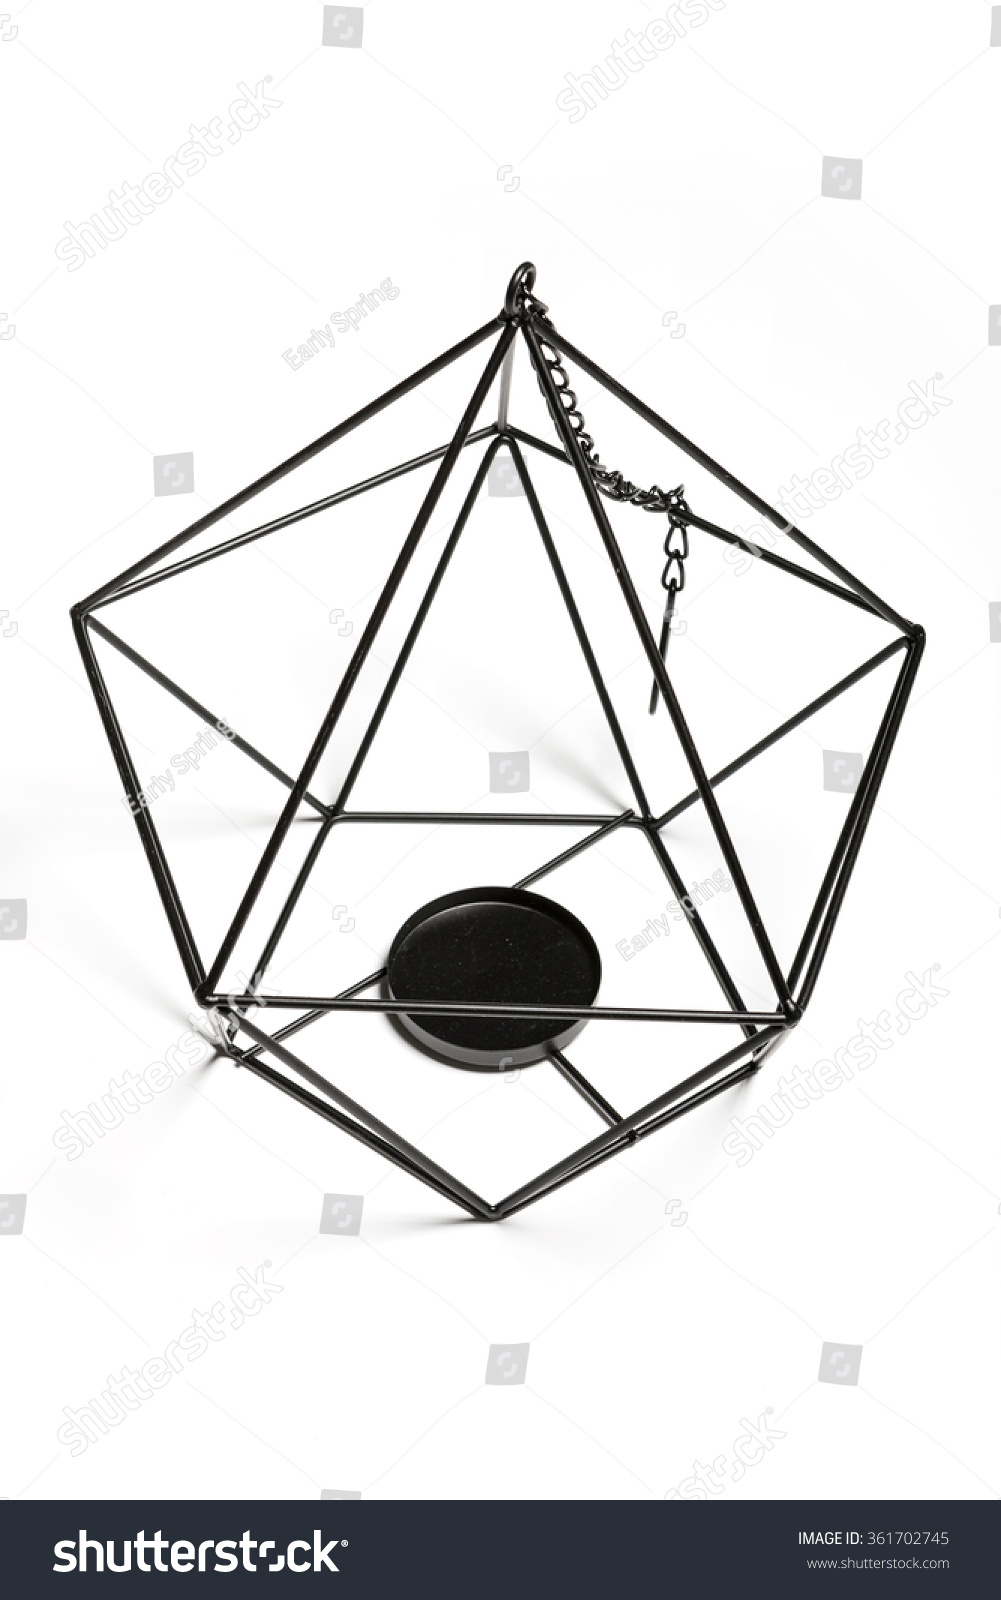 Black iron wire handcraft shaped square stock photo